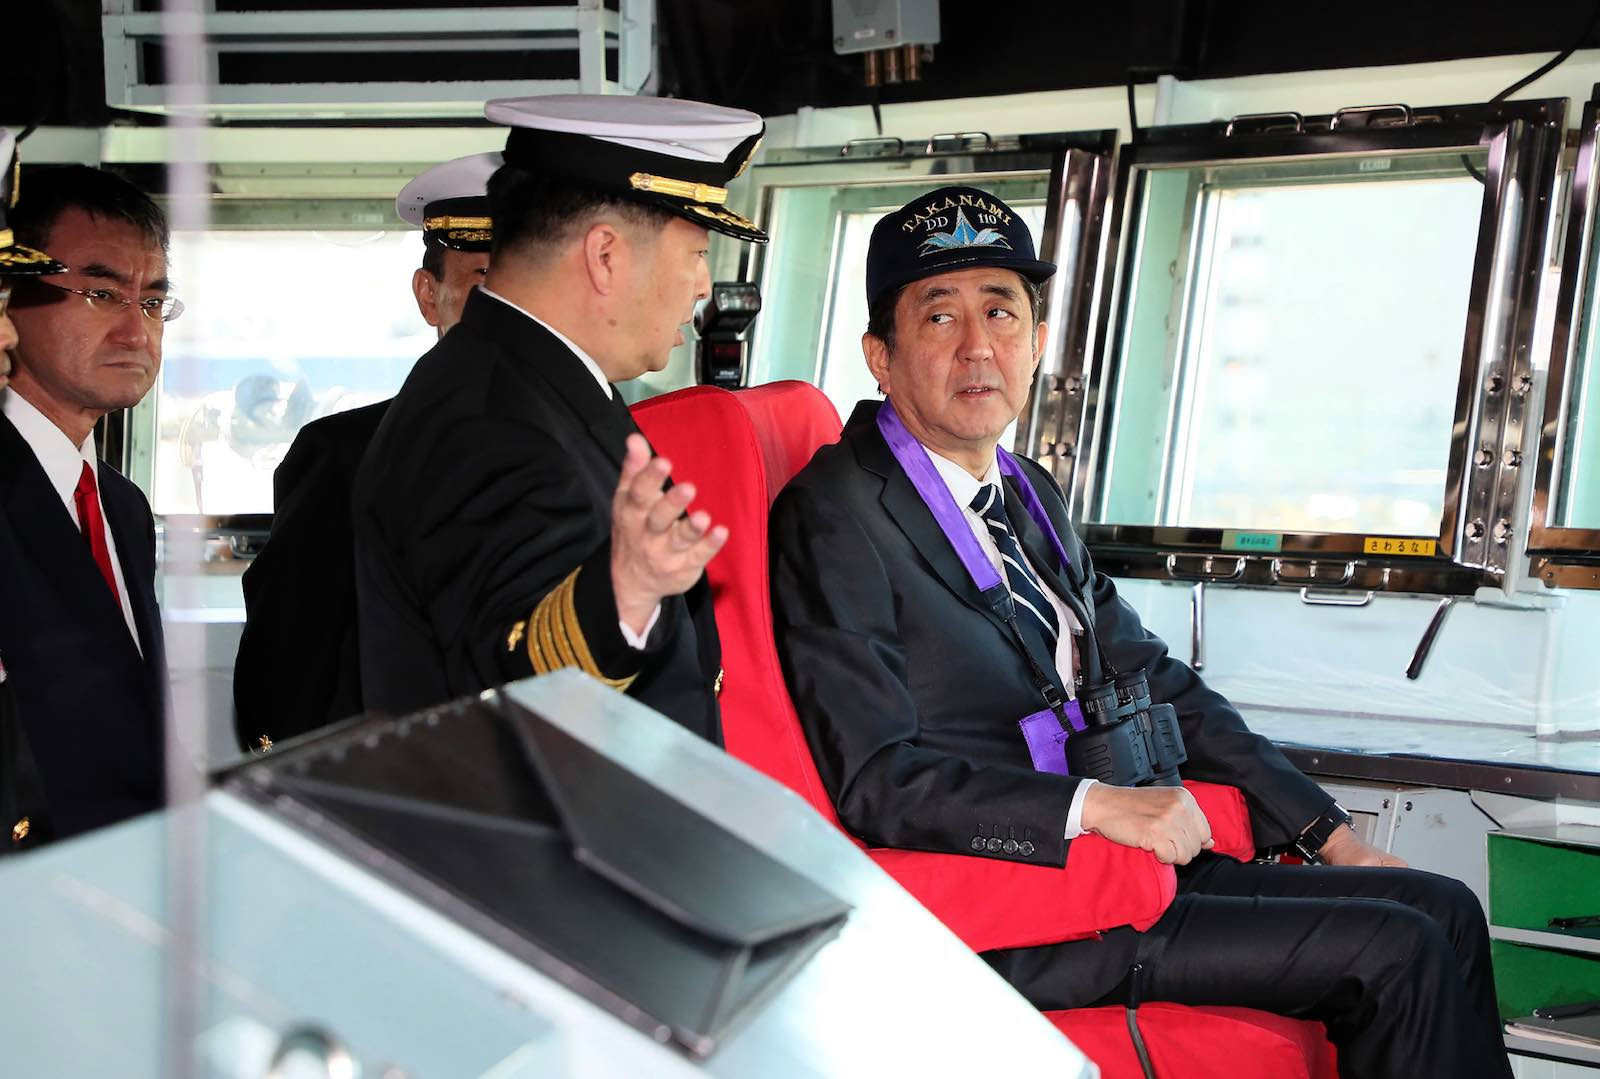 Japan's Abe Shinzo inspects the destroyer Takanami this month before the ship deployed to the Middle East (STR/AFP/Getty Images)